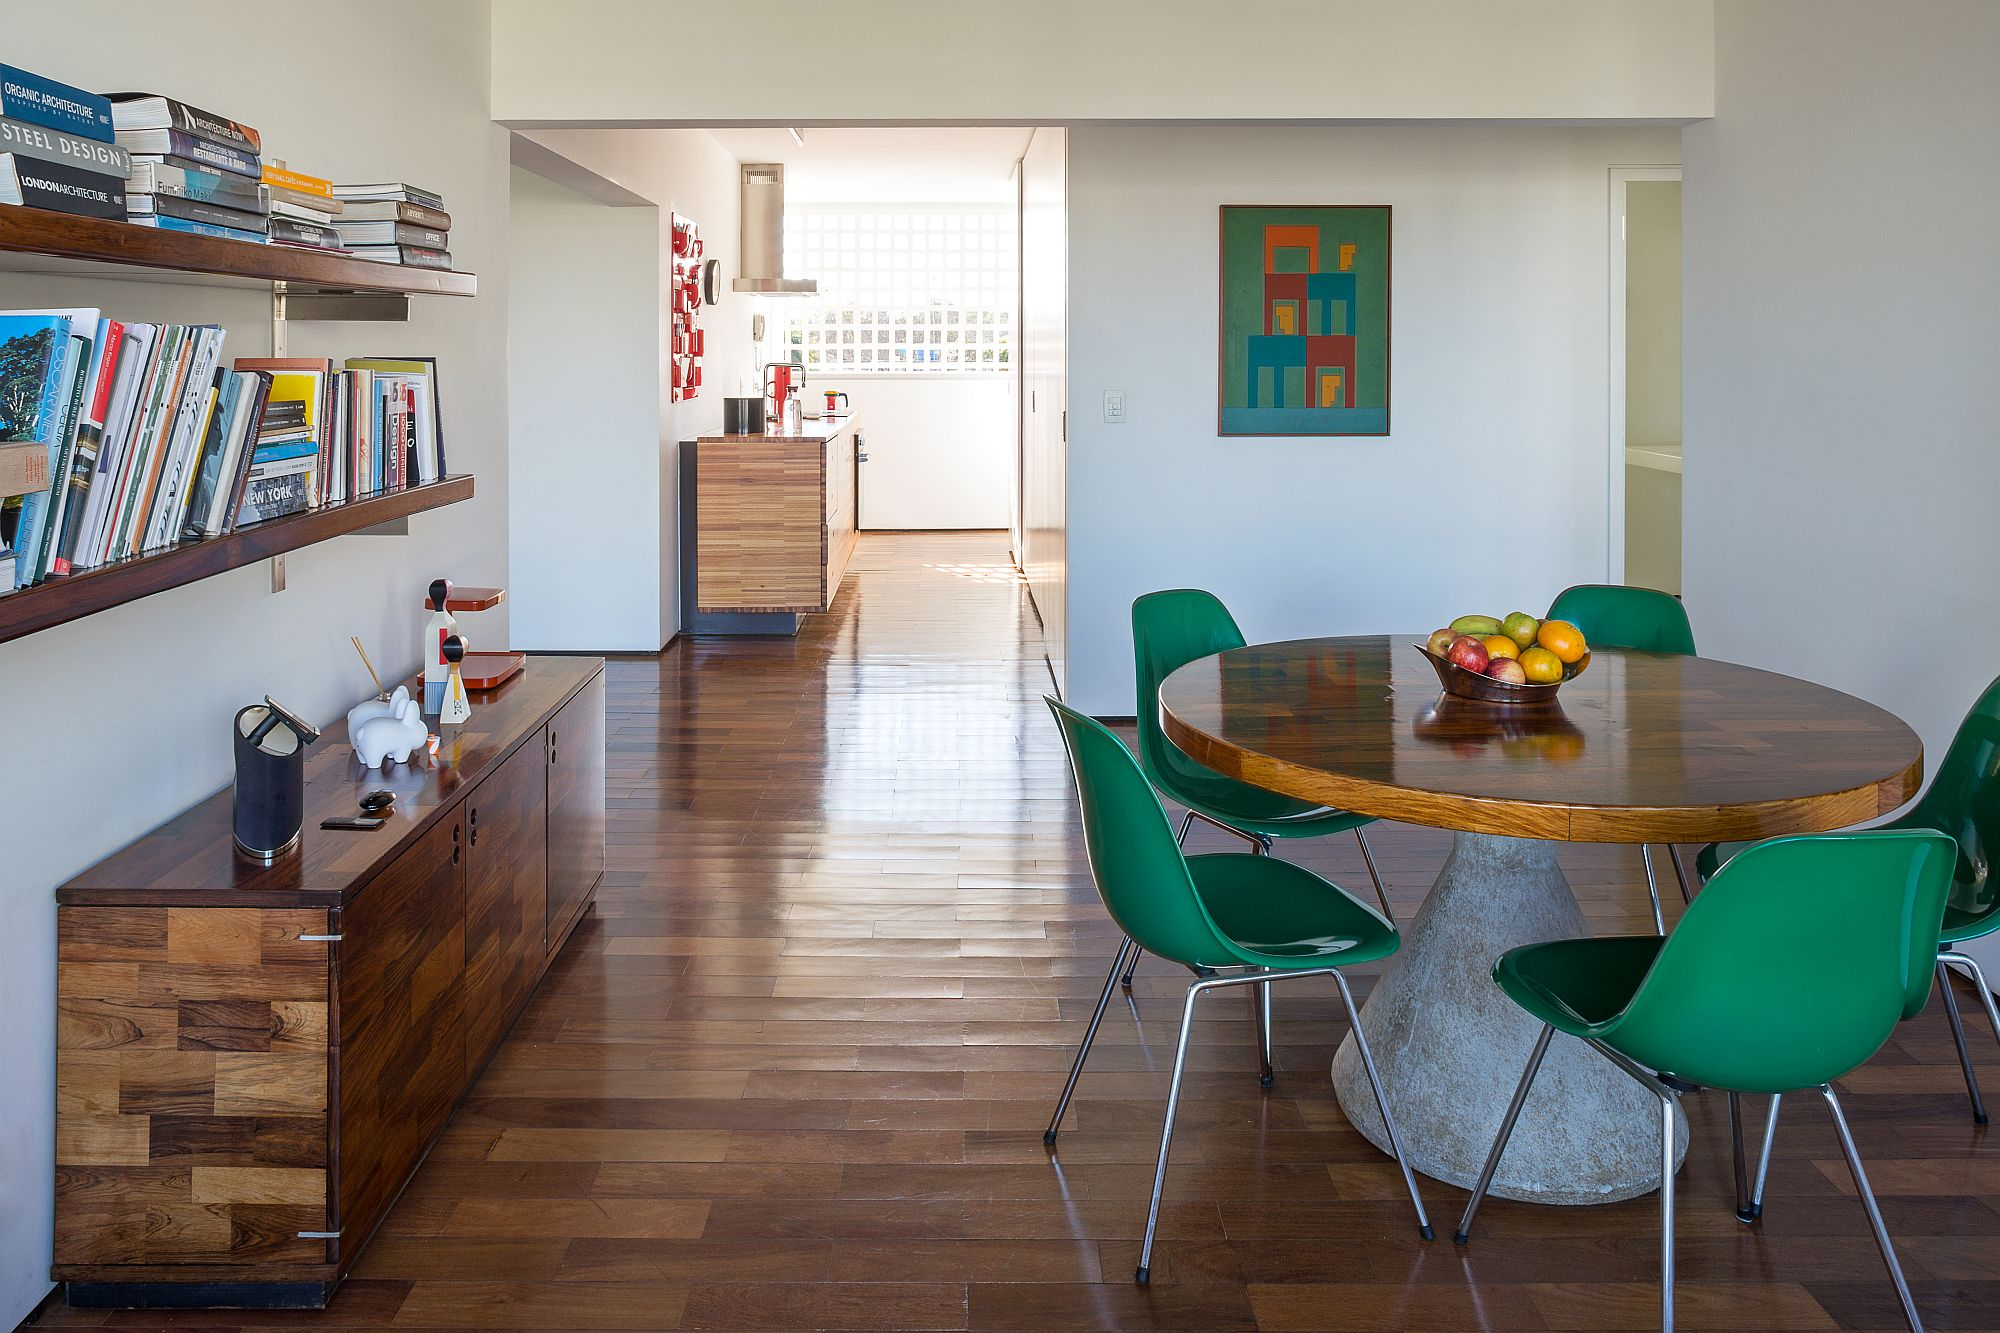 Dining table with concrete base, wooden top is surrounded by beautiful green chairs